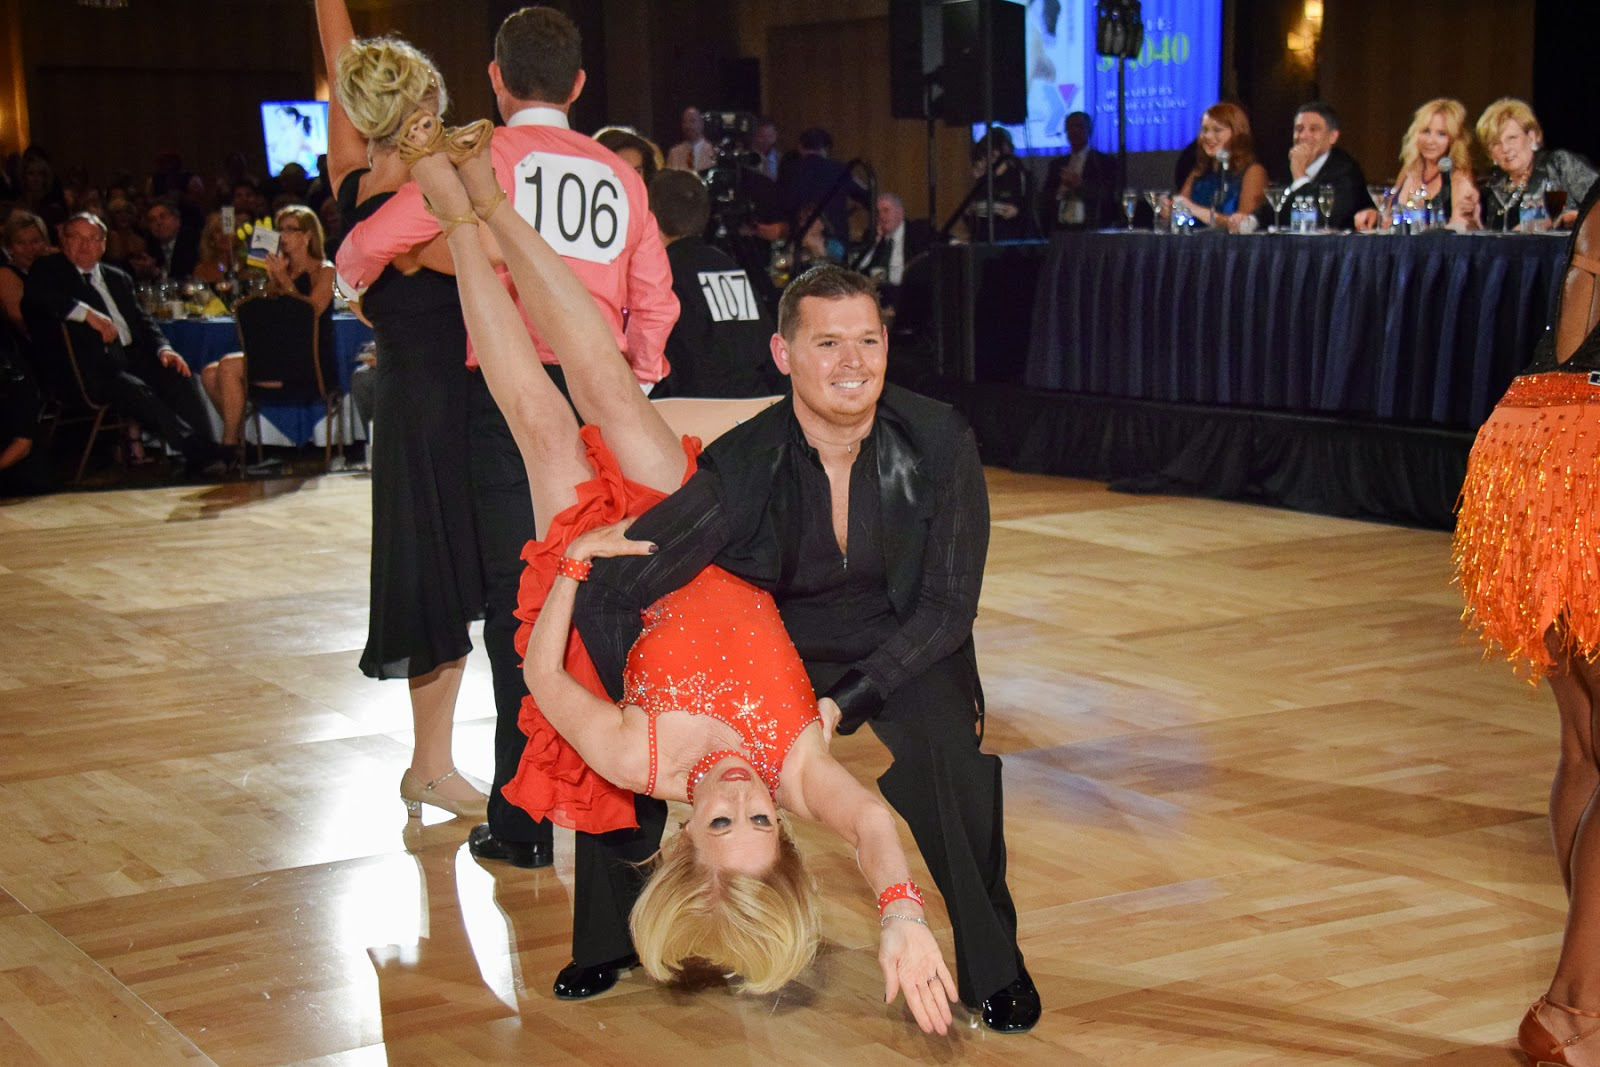 Alex dancing with the stars hookup